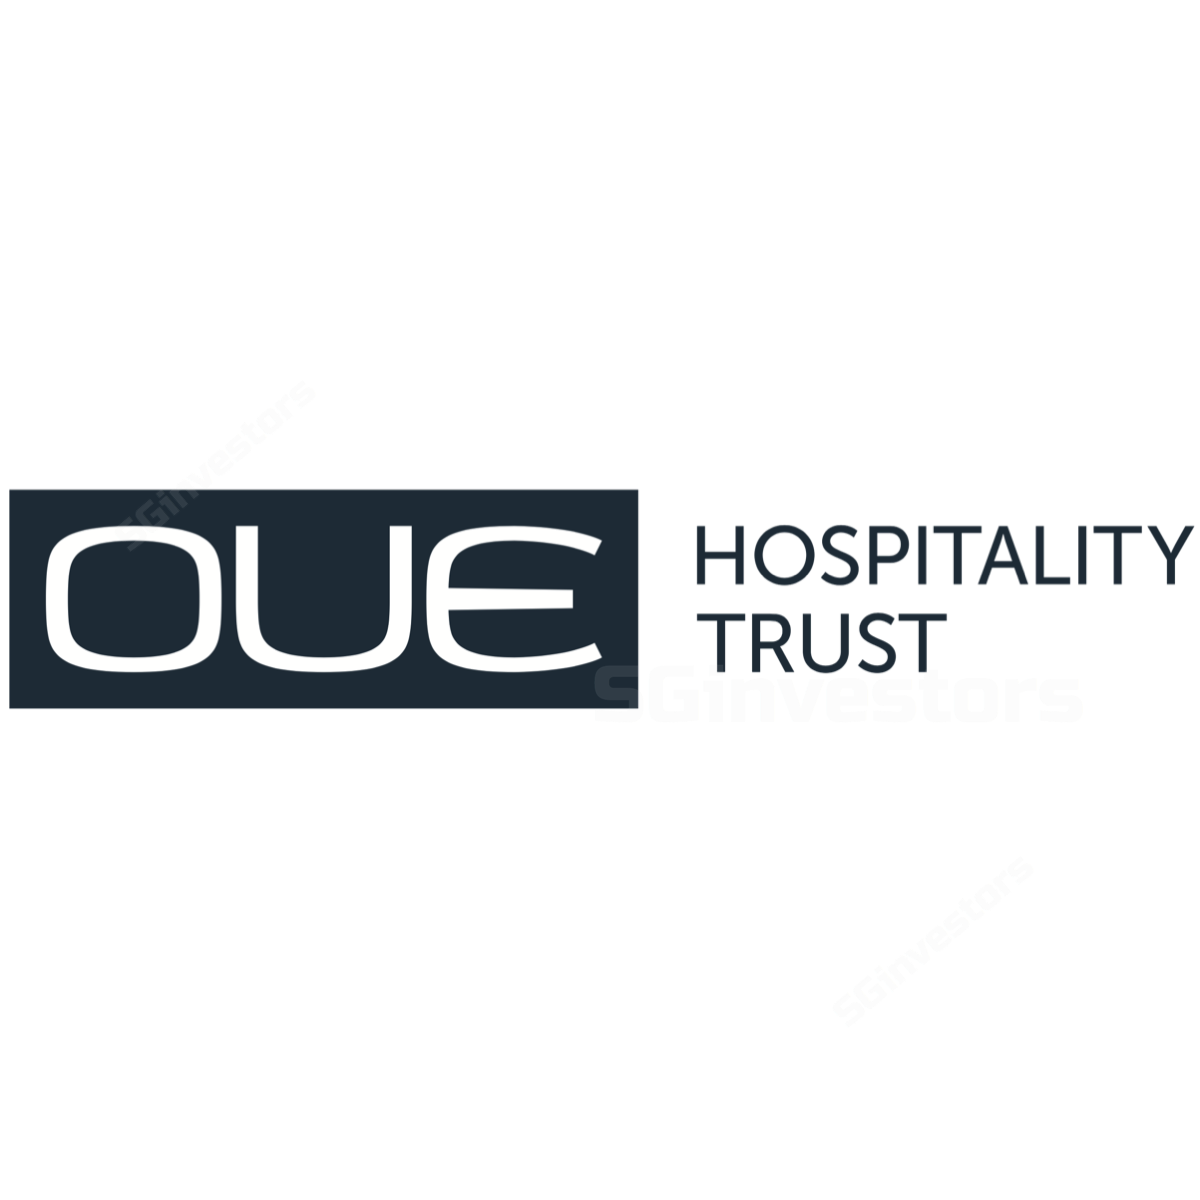 OUE Hospitality Trust -  2016-11-01: Keep the faith